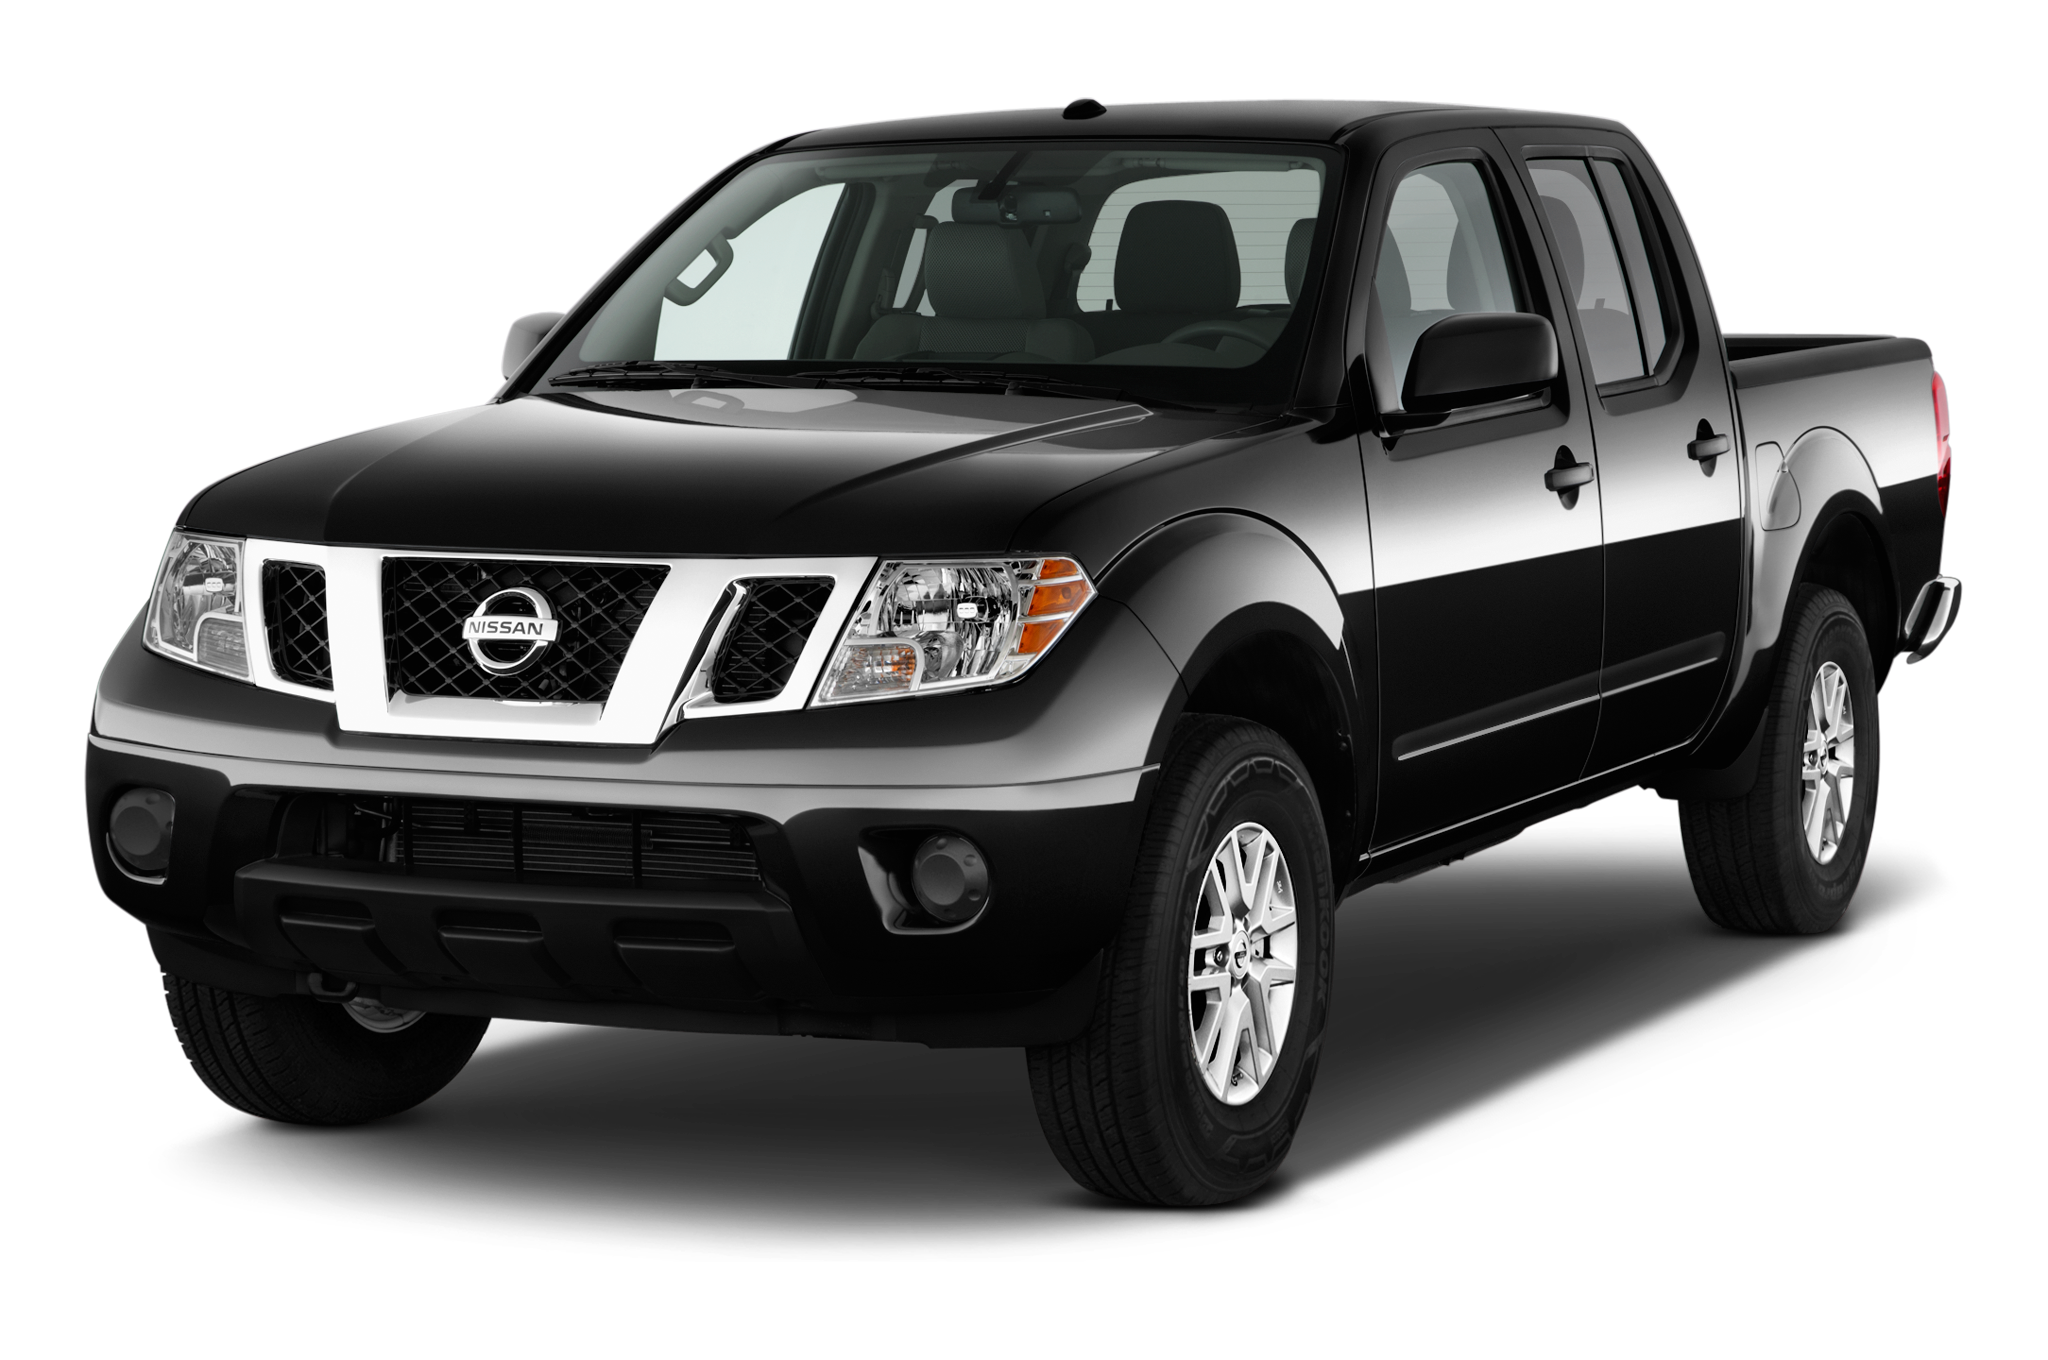 2017 nissan frontier reviews and rating motor trend rh motortrend com 2001 nissan frontier manual transmission problems 2006 nissan frontier manual transmission problems